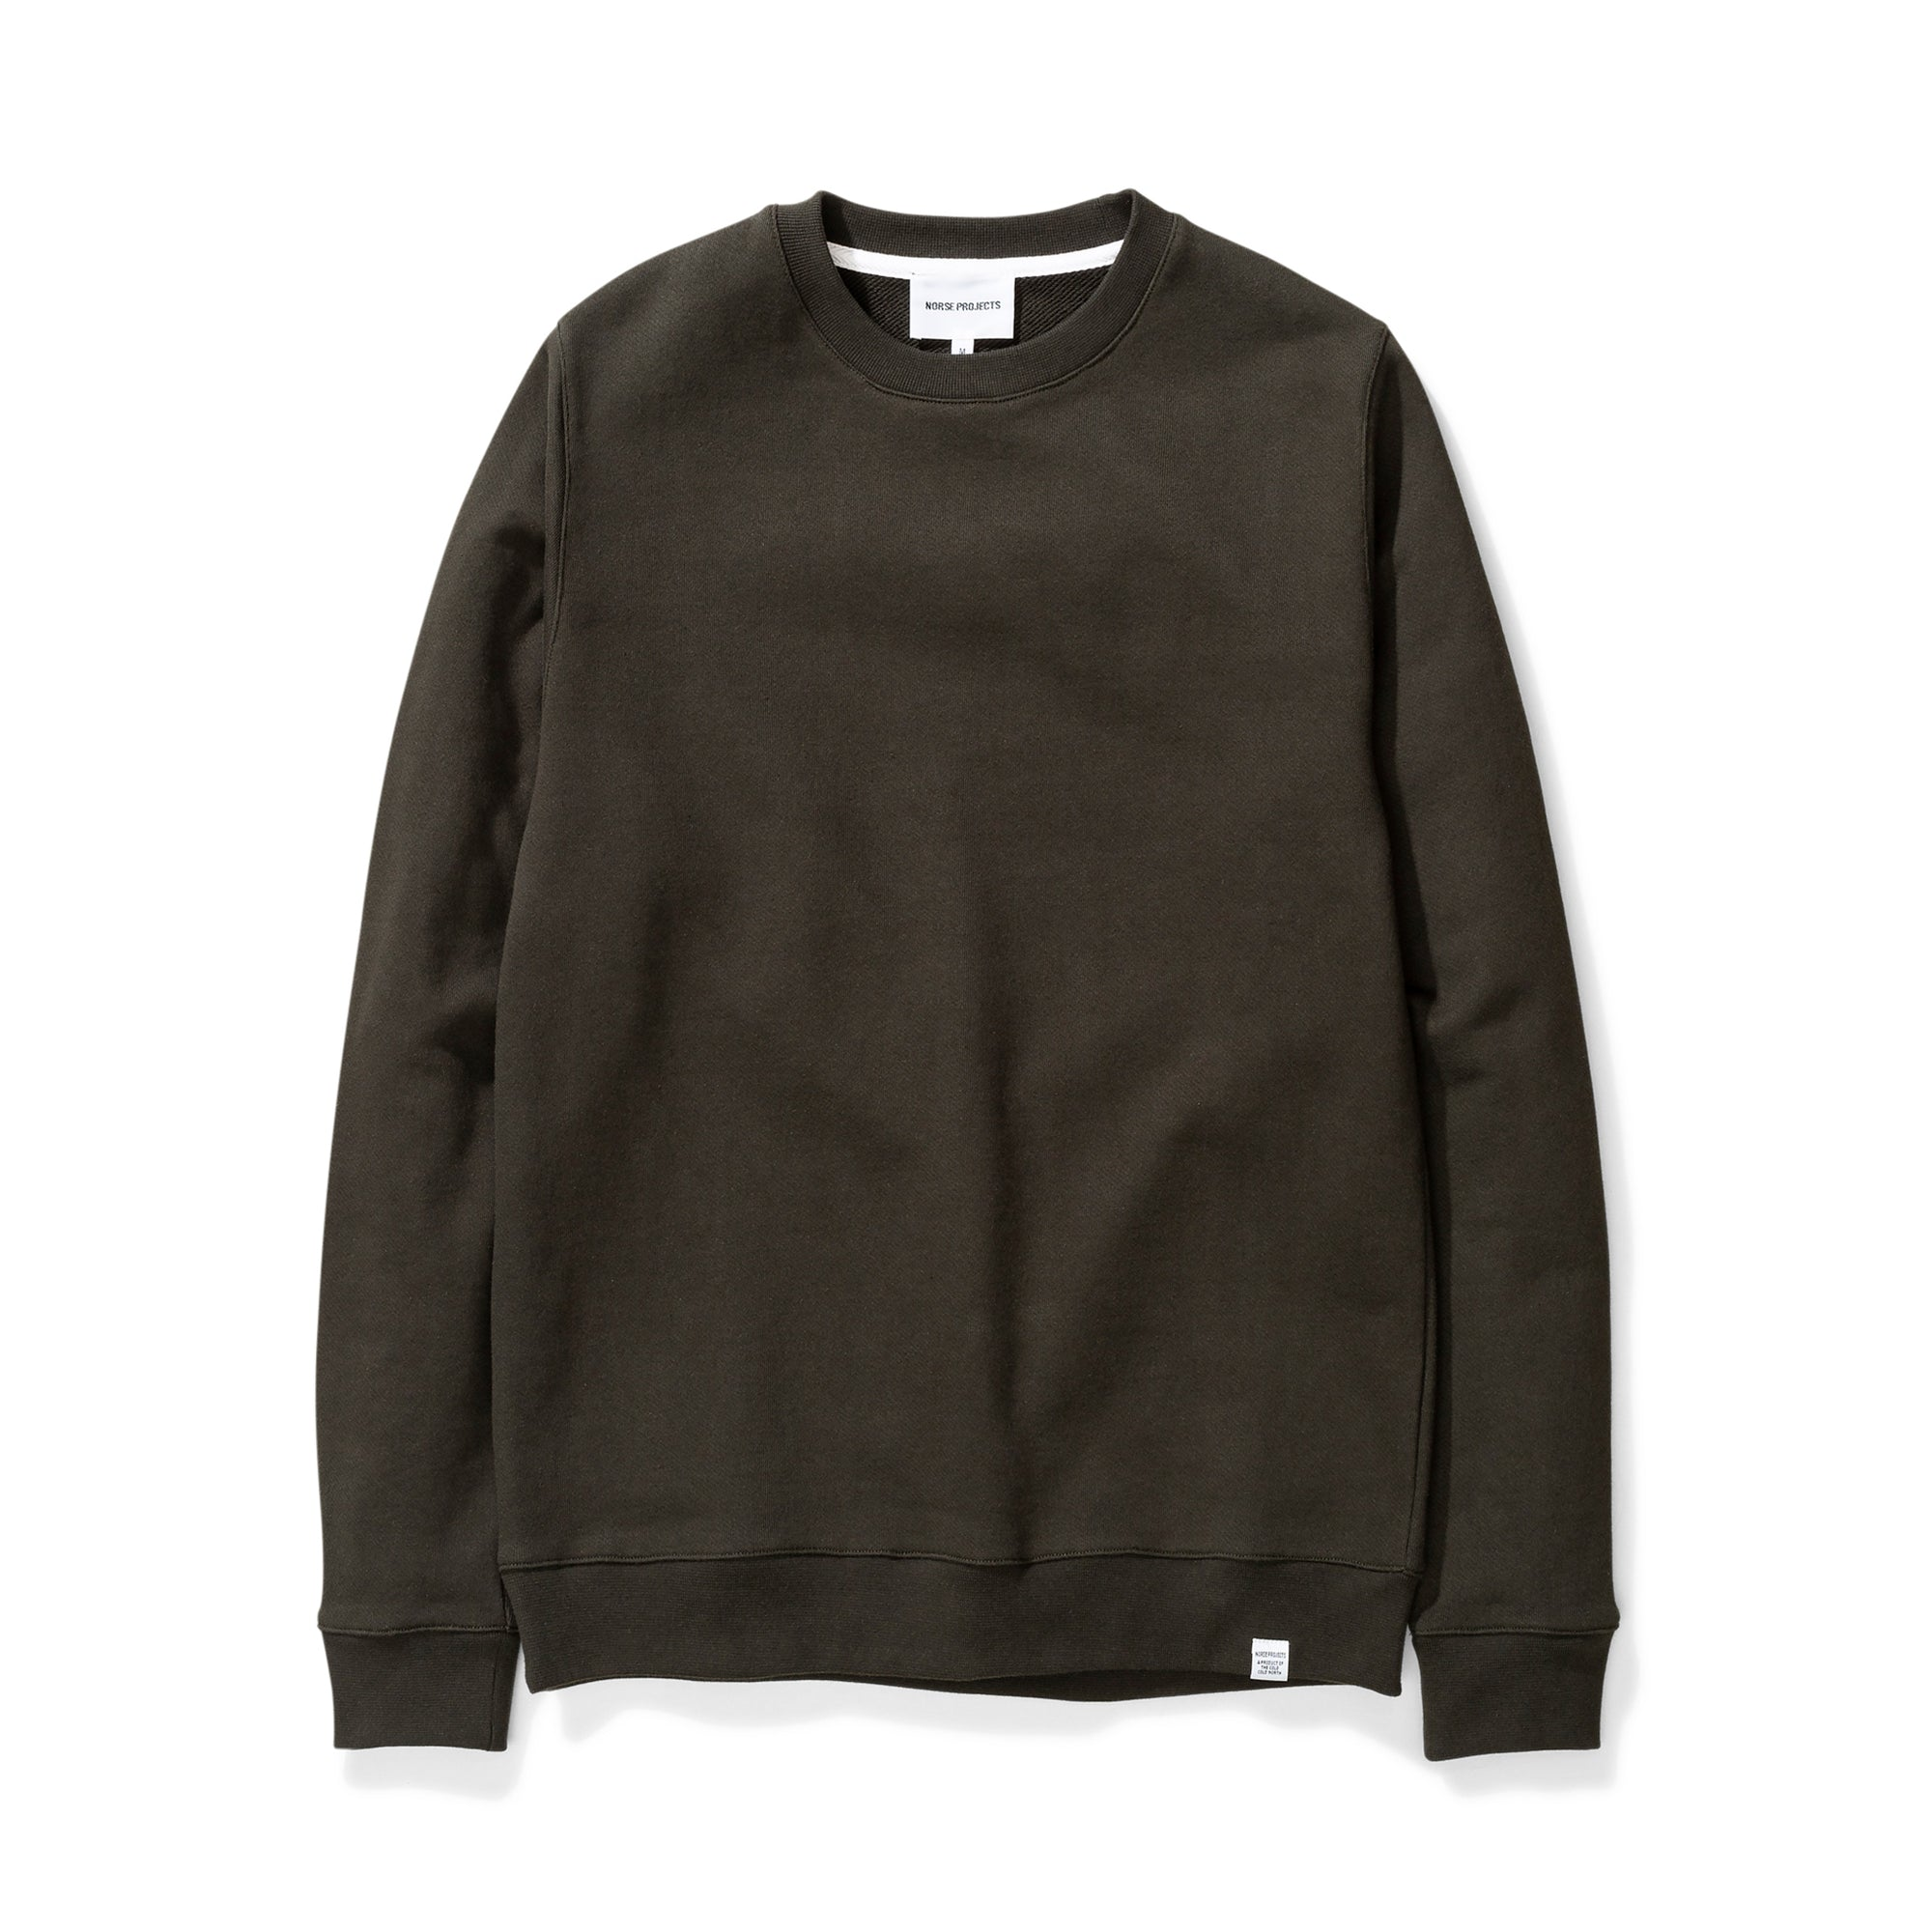 Norse Projects Vagn Classic Crew: Beech Green - The Union Project